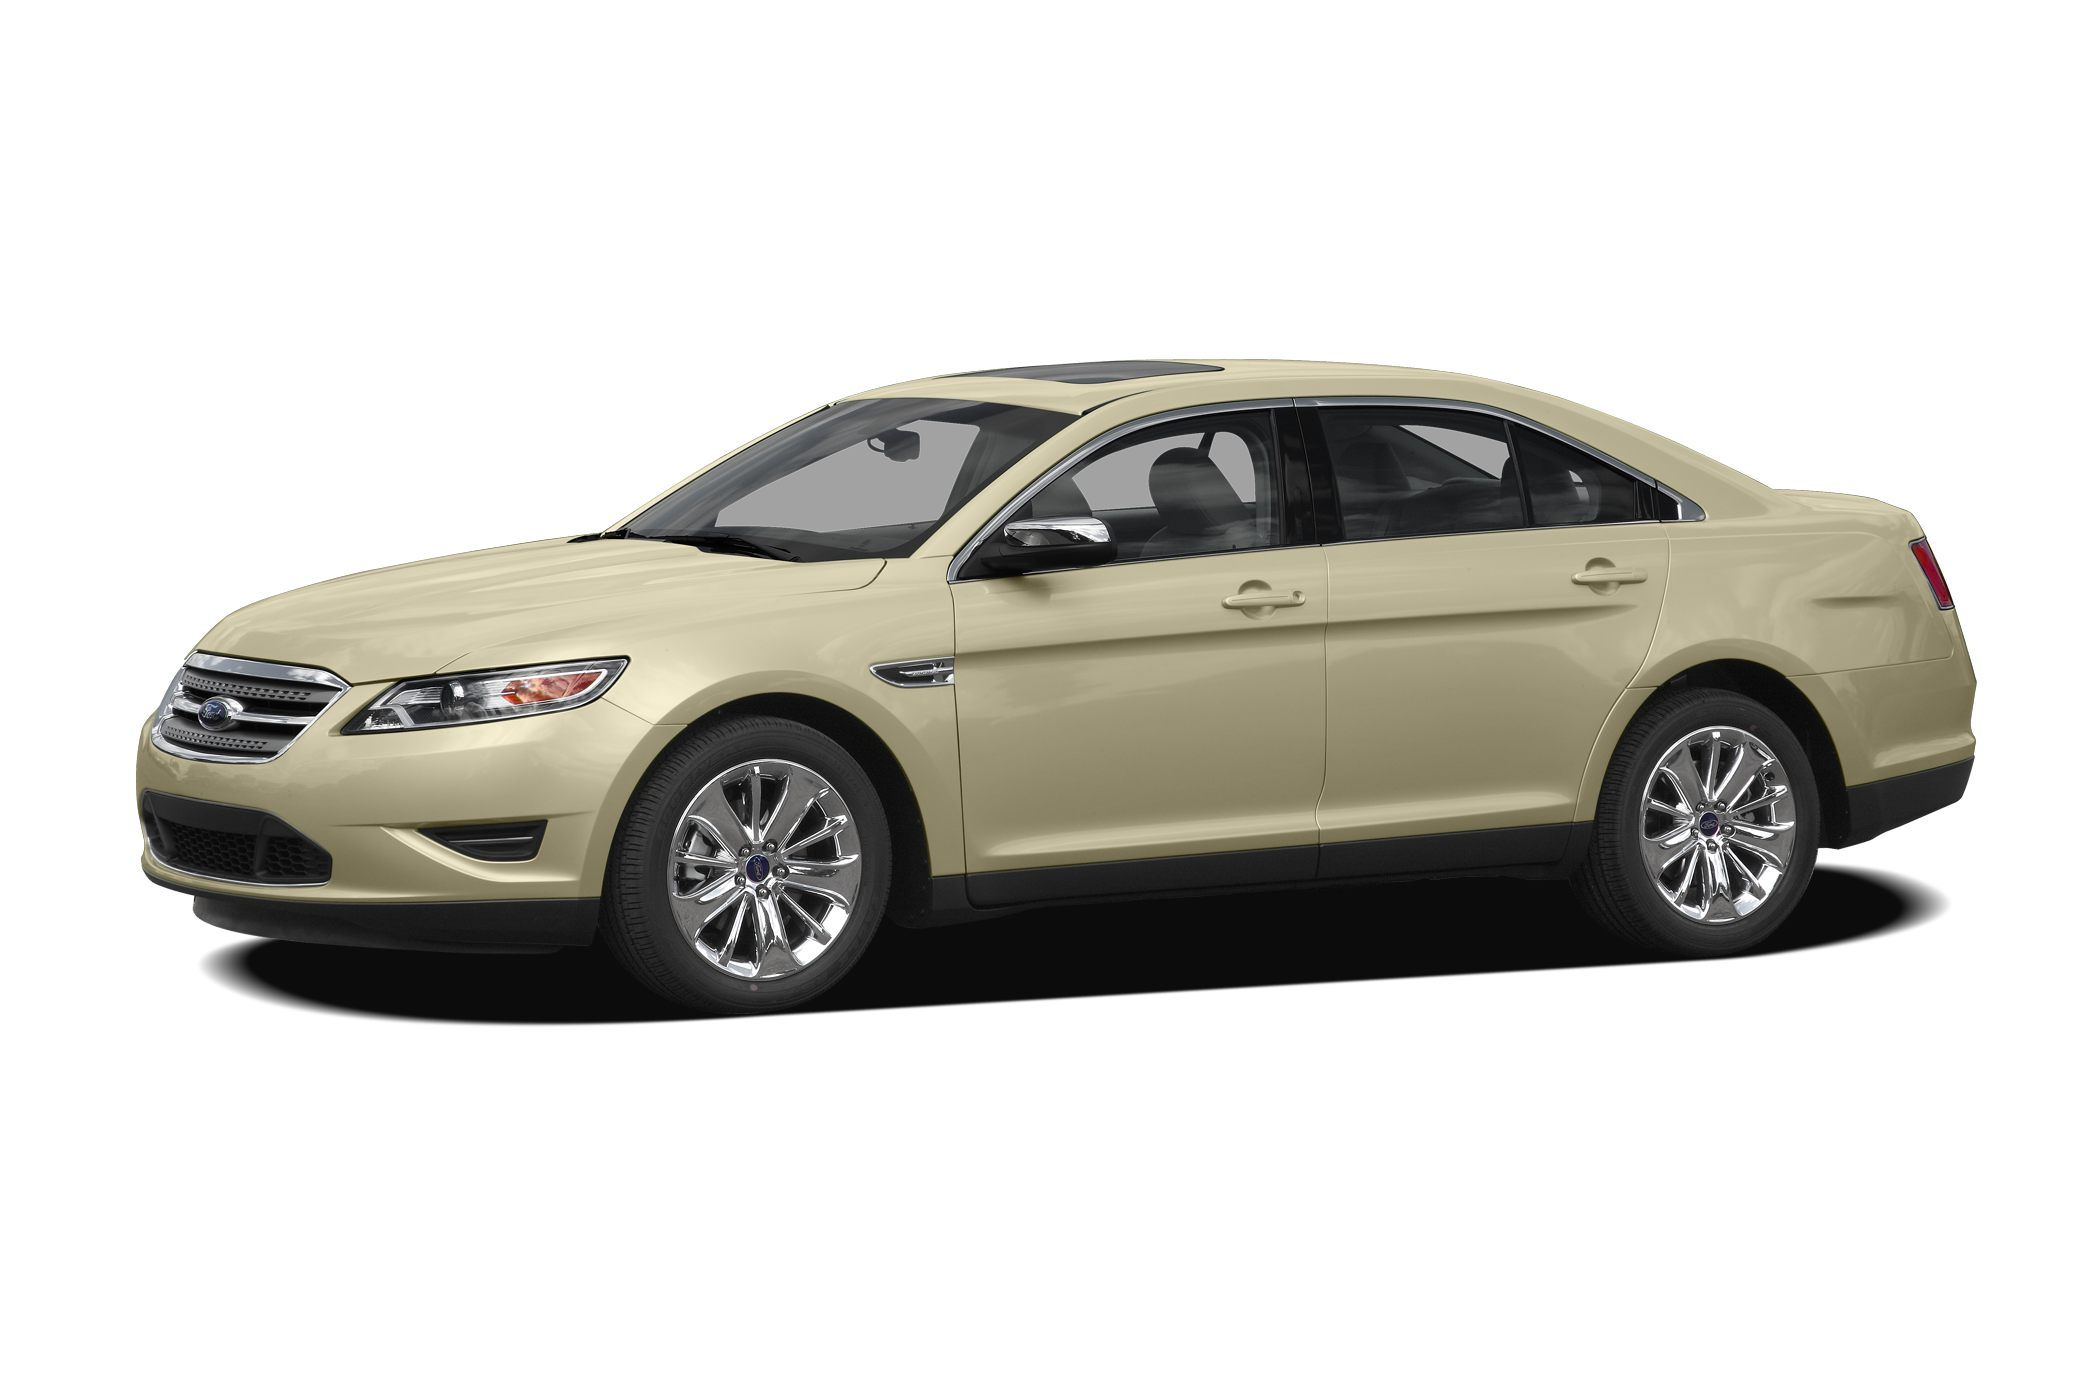 2010 Ford Taurus SEL Sedan for sale in Louisville for $13,000 with 93,648 miles